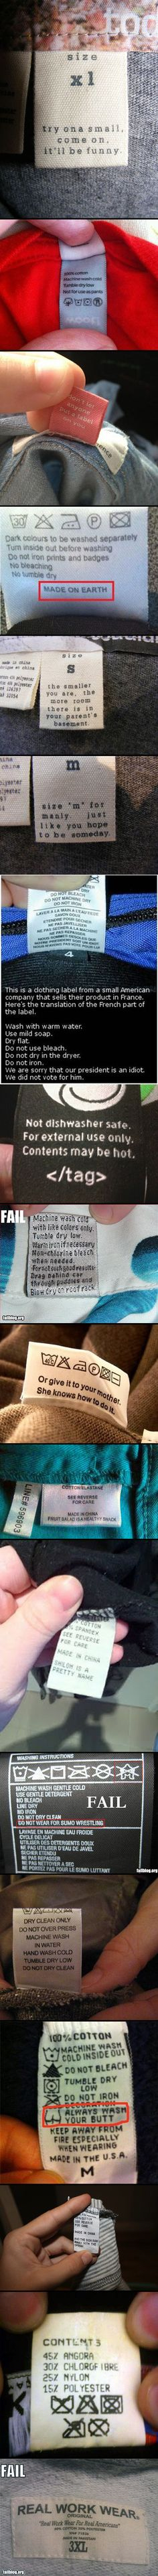 Here are some bizarre, yet real, clothing tags that make absolutely no sense. My favorite is the President one.